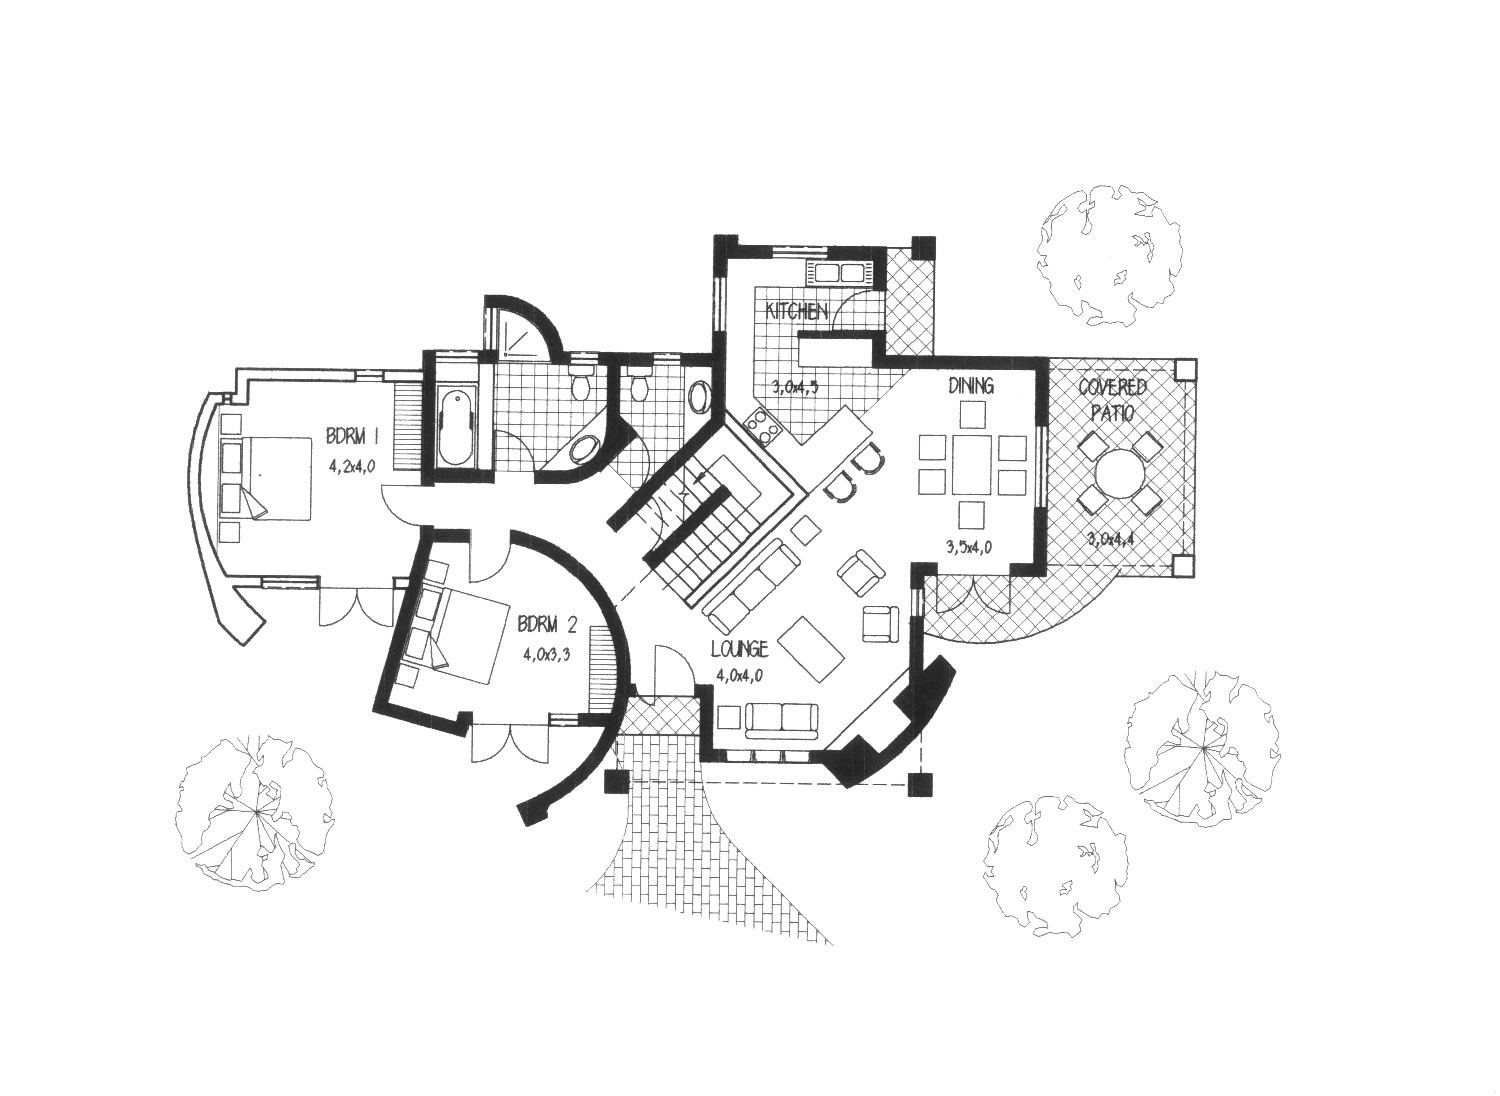 Thatched House Plans – The Architect